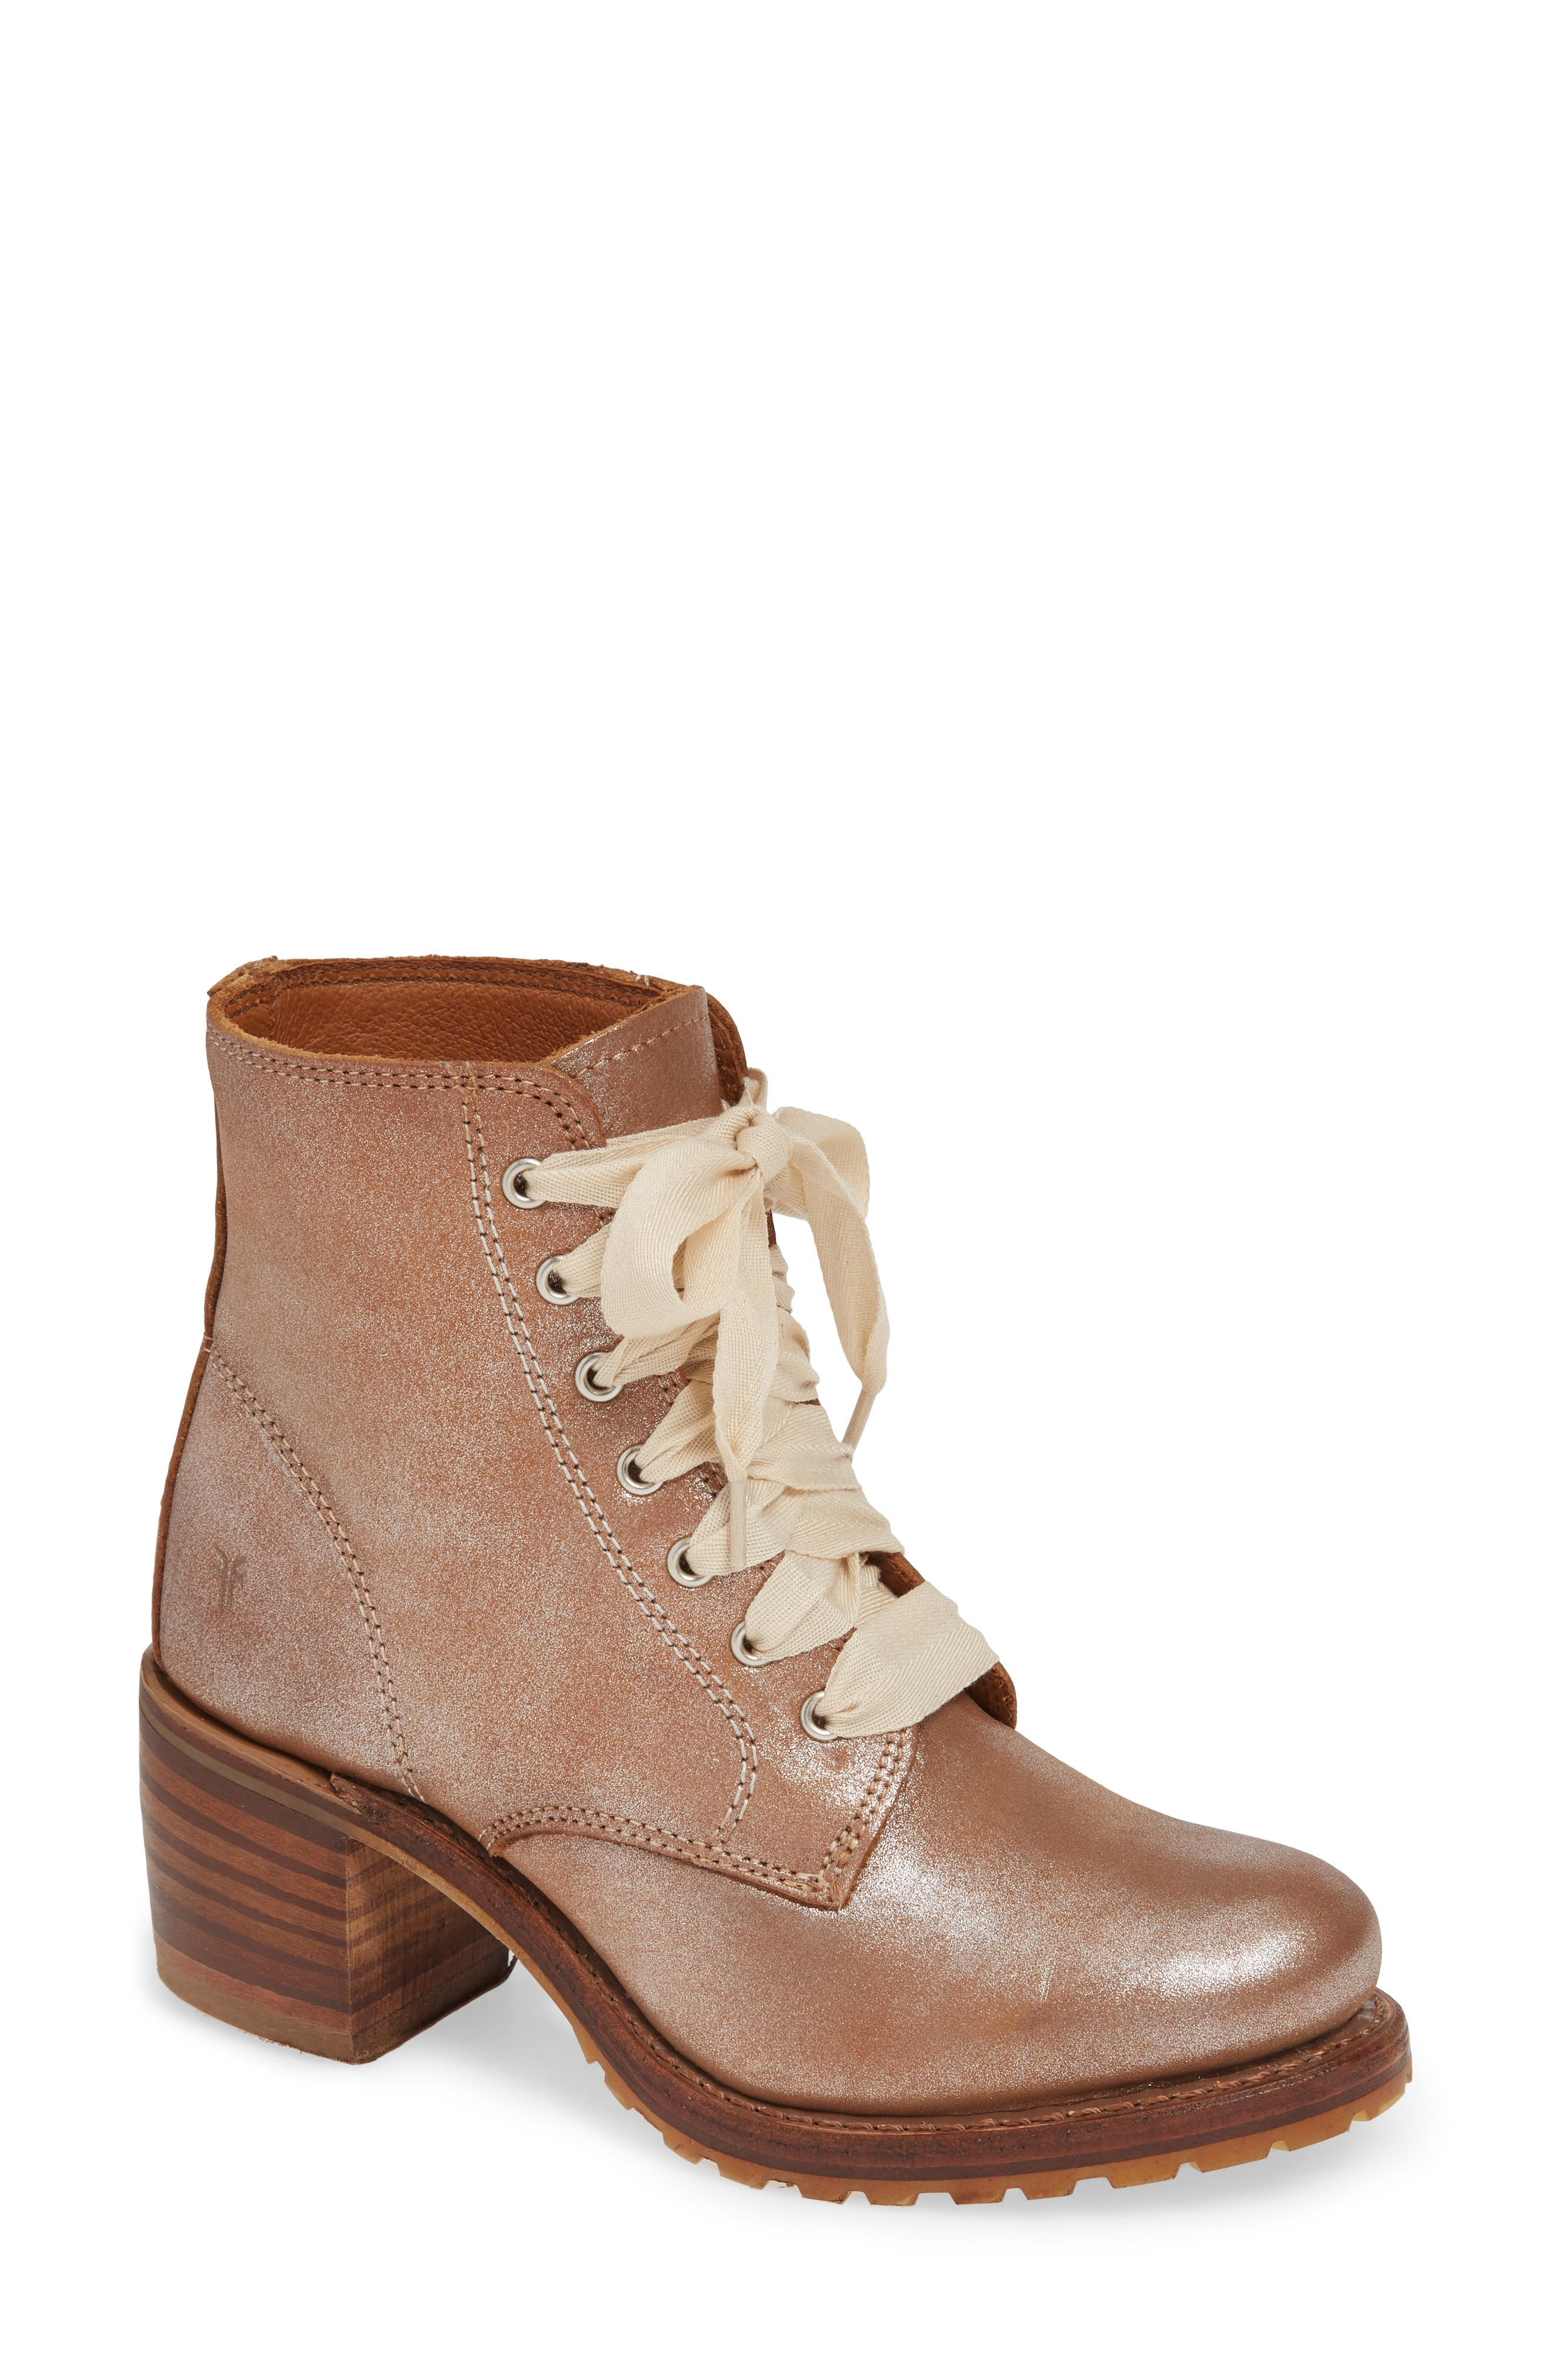 FRYE 'Sabrina' Boot, Main, color, SILVER LEATHER